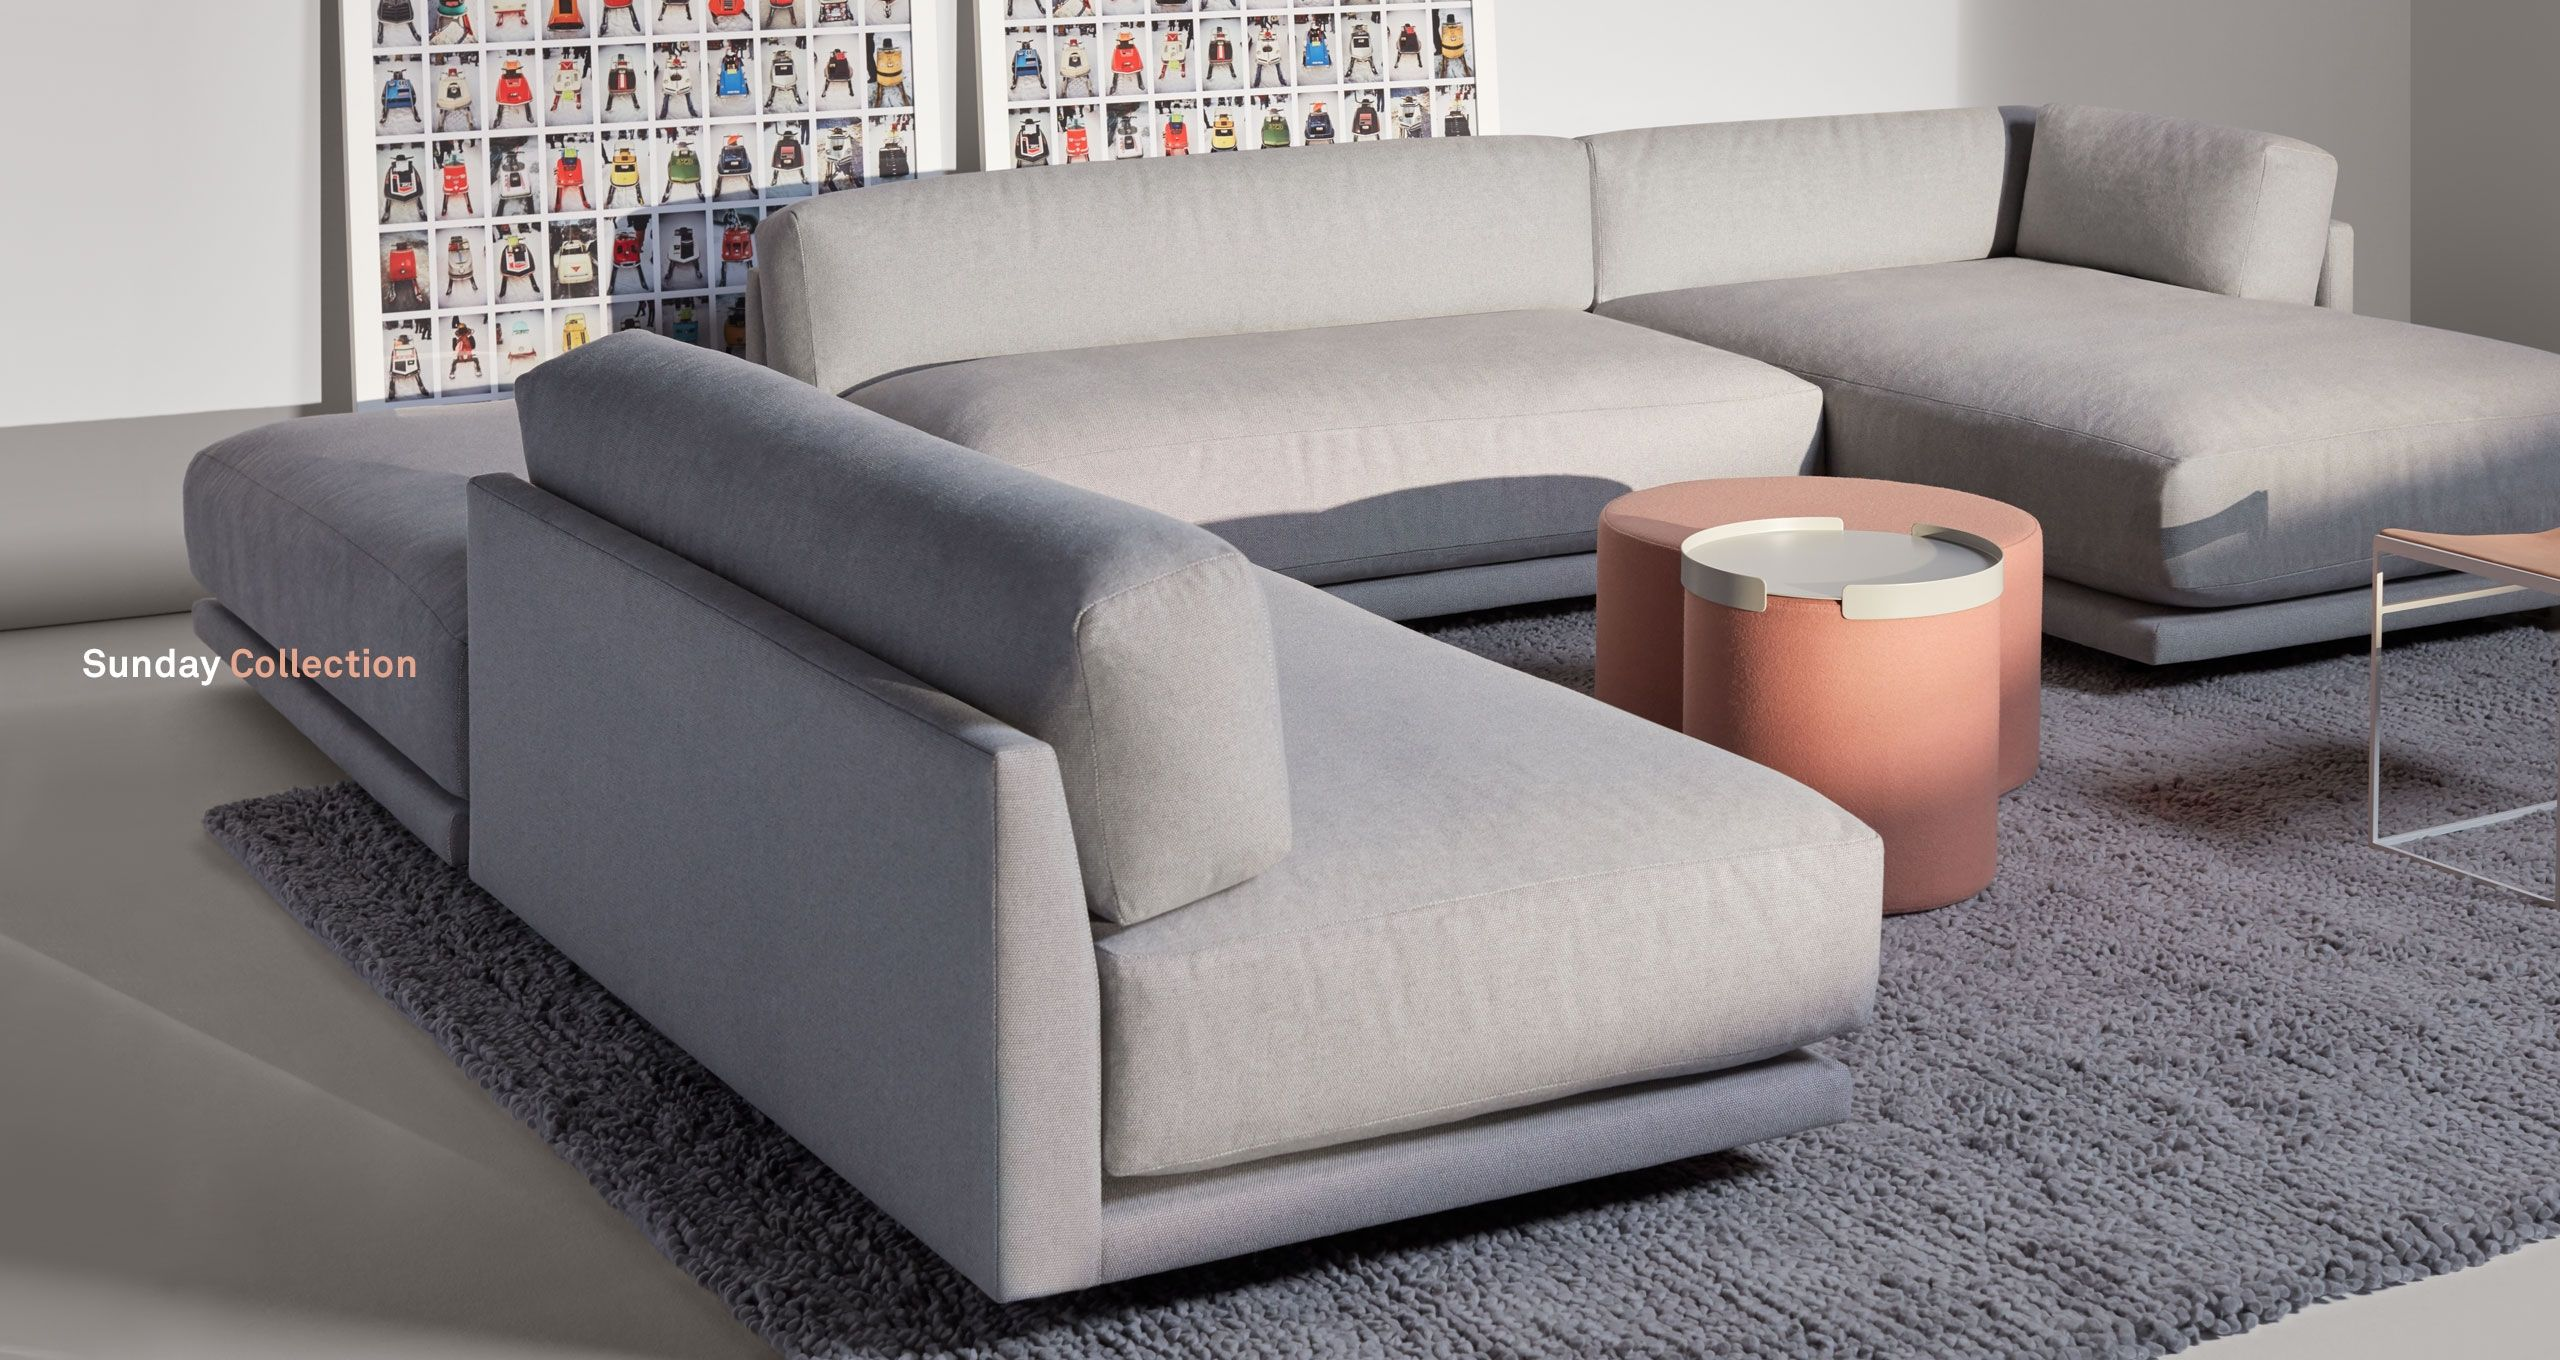 Sunday Collection By Blu Dot Blue Dot Furniture Contemporary Furniture Design Contemporary Modern Furniture